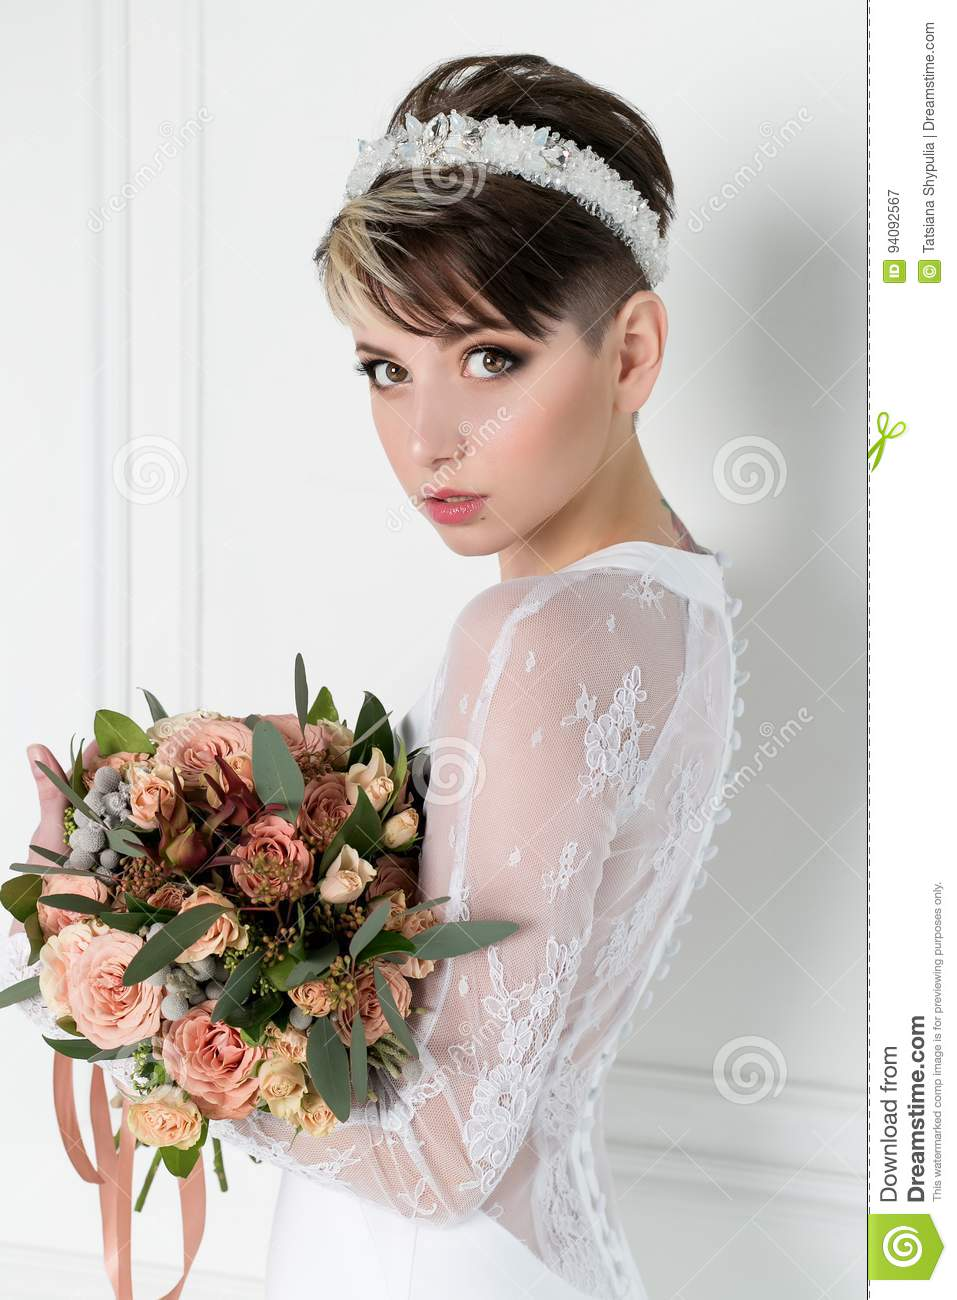 Beautiful Tender Bride Girl With Short Haircut With Crown On Head